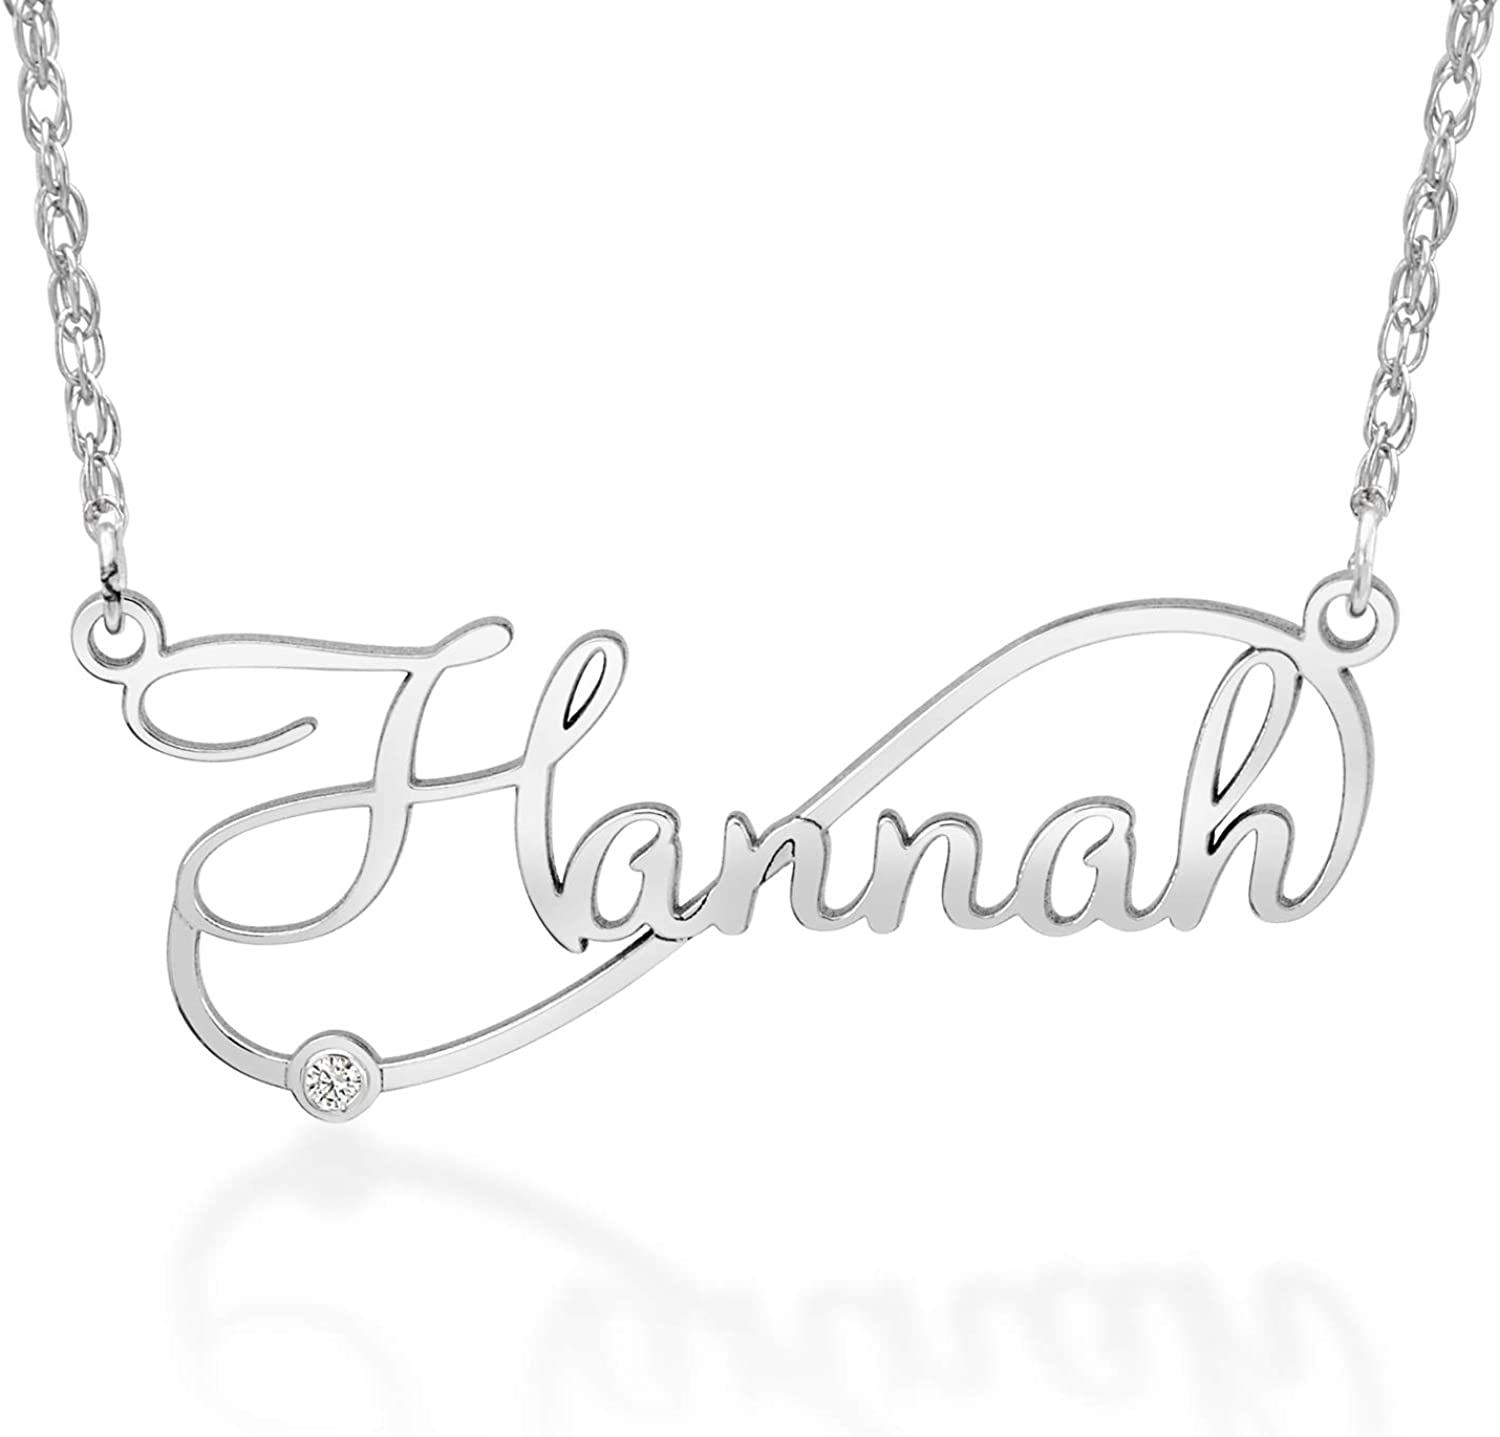 0.35x1.37 | Up to 8 Letters Personalized Cursive Name Plate Necklace 9.5x35mm Available in Silver /& Gold High-Grade Material